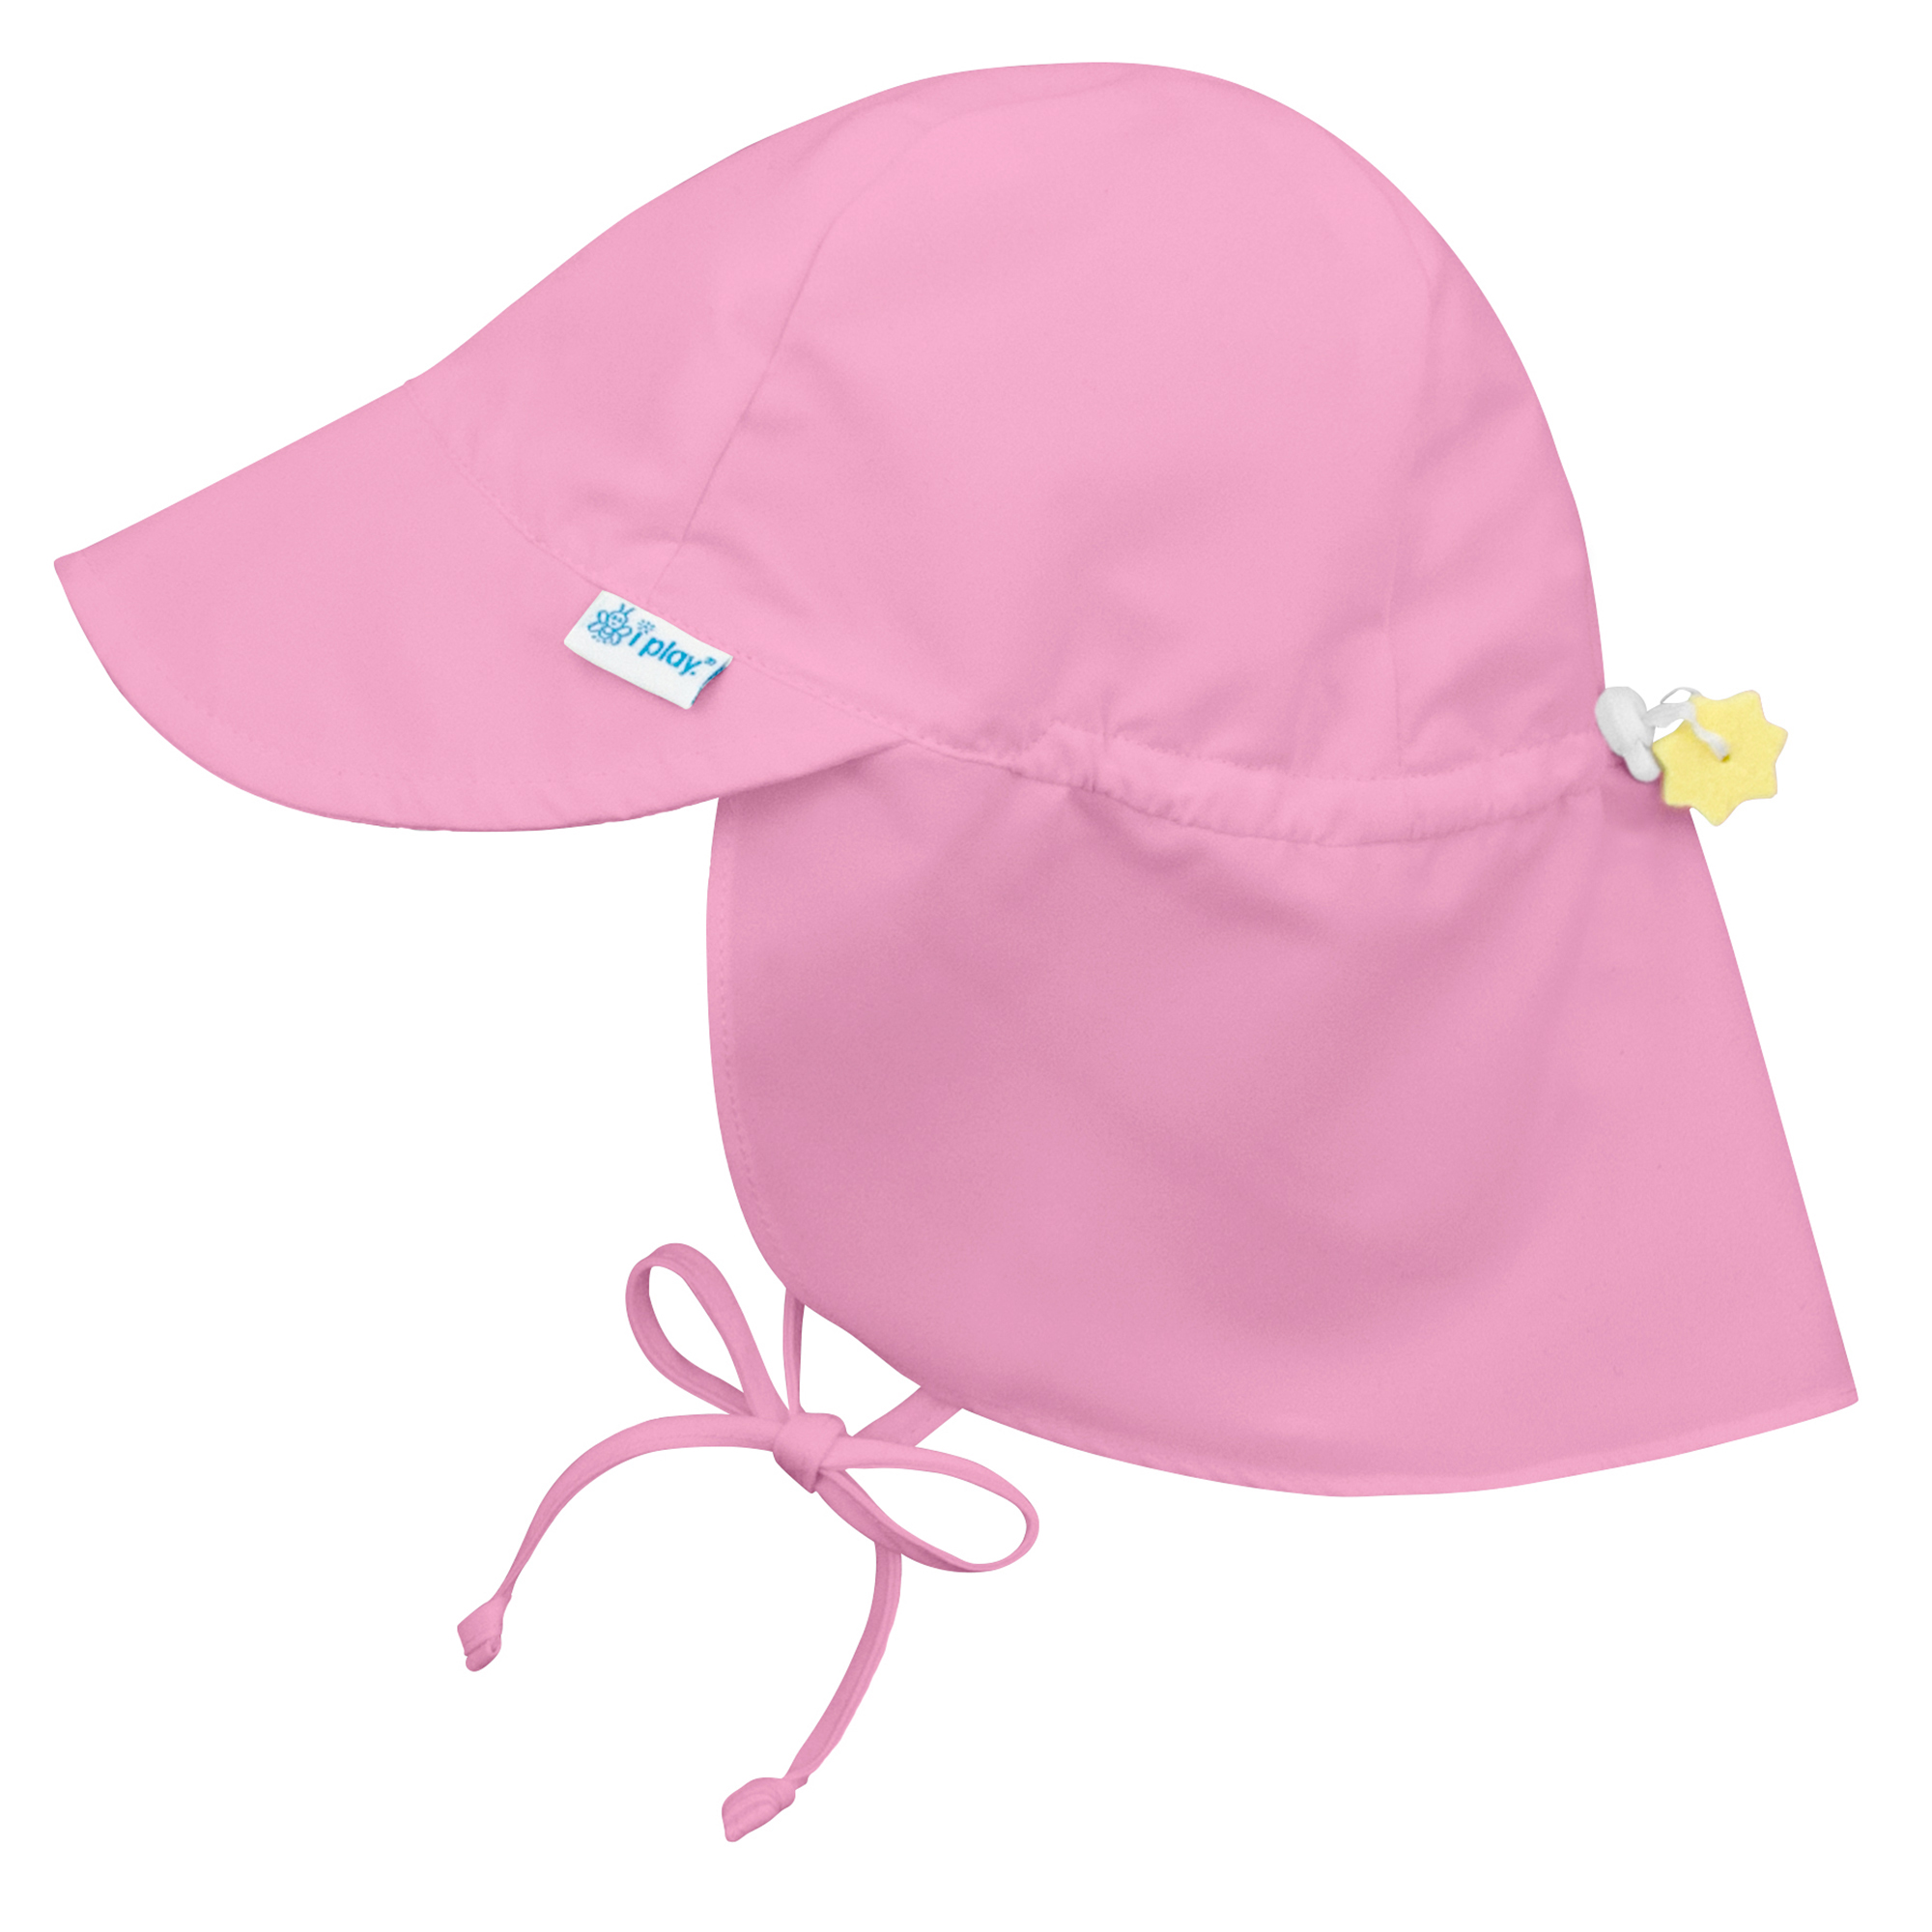 73cb41b1 Iplay Flap Sun Hat for Baby Girls Sun Protection Large Billed Hat- Solid  Light Pink-Infant 9-18 Months Baby Girl Hat Is Adjustable To Fit Outdoor Hat  With ...